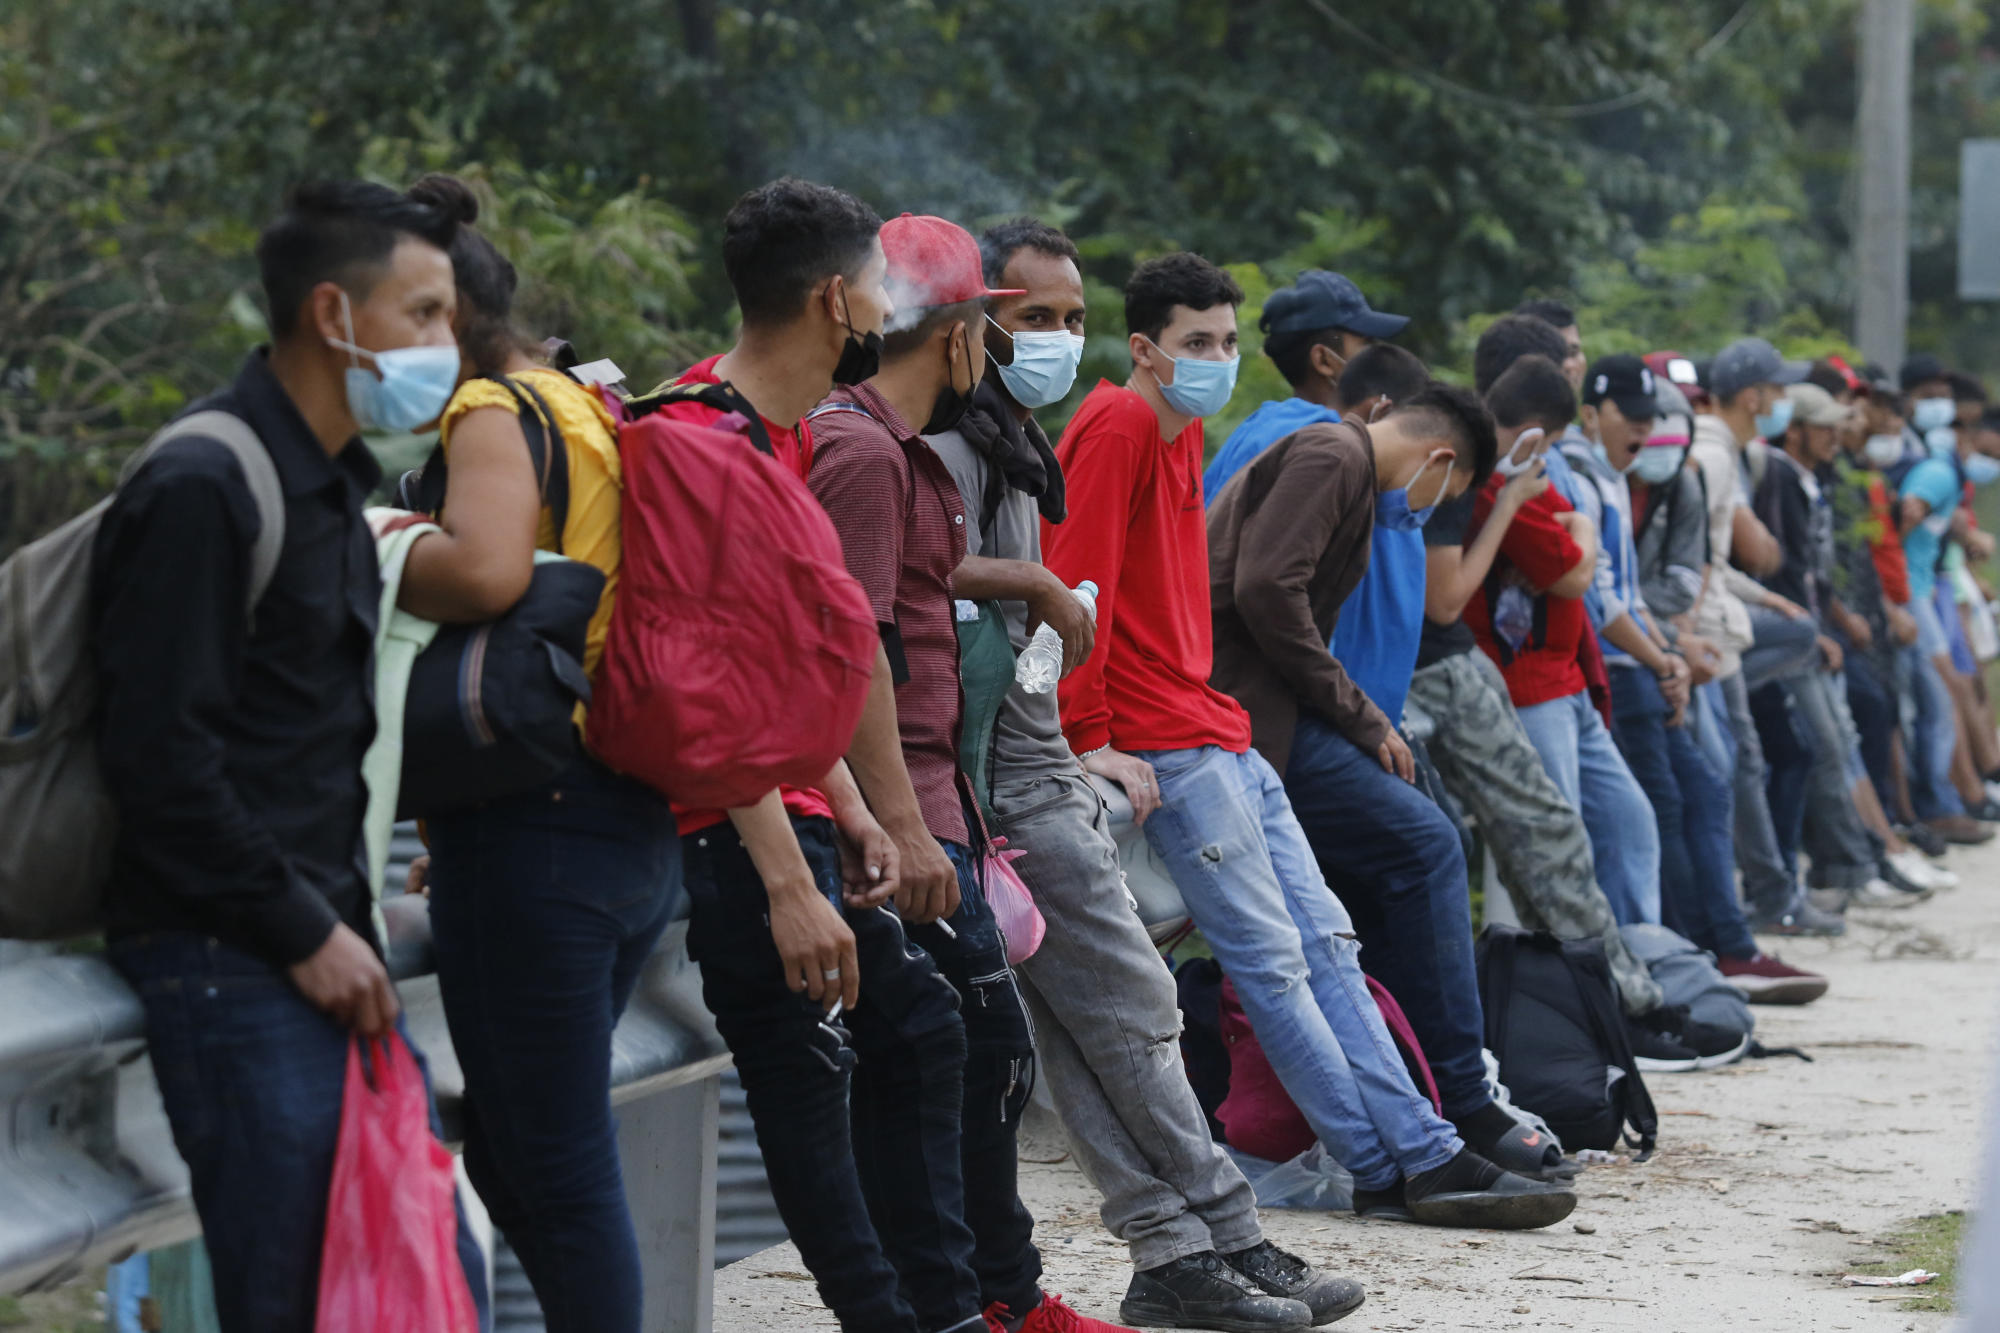 Migrant caravan on the move in Honduras in uncertain times